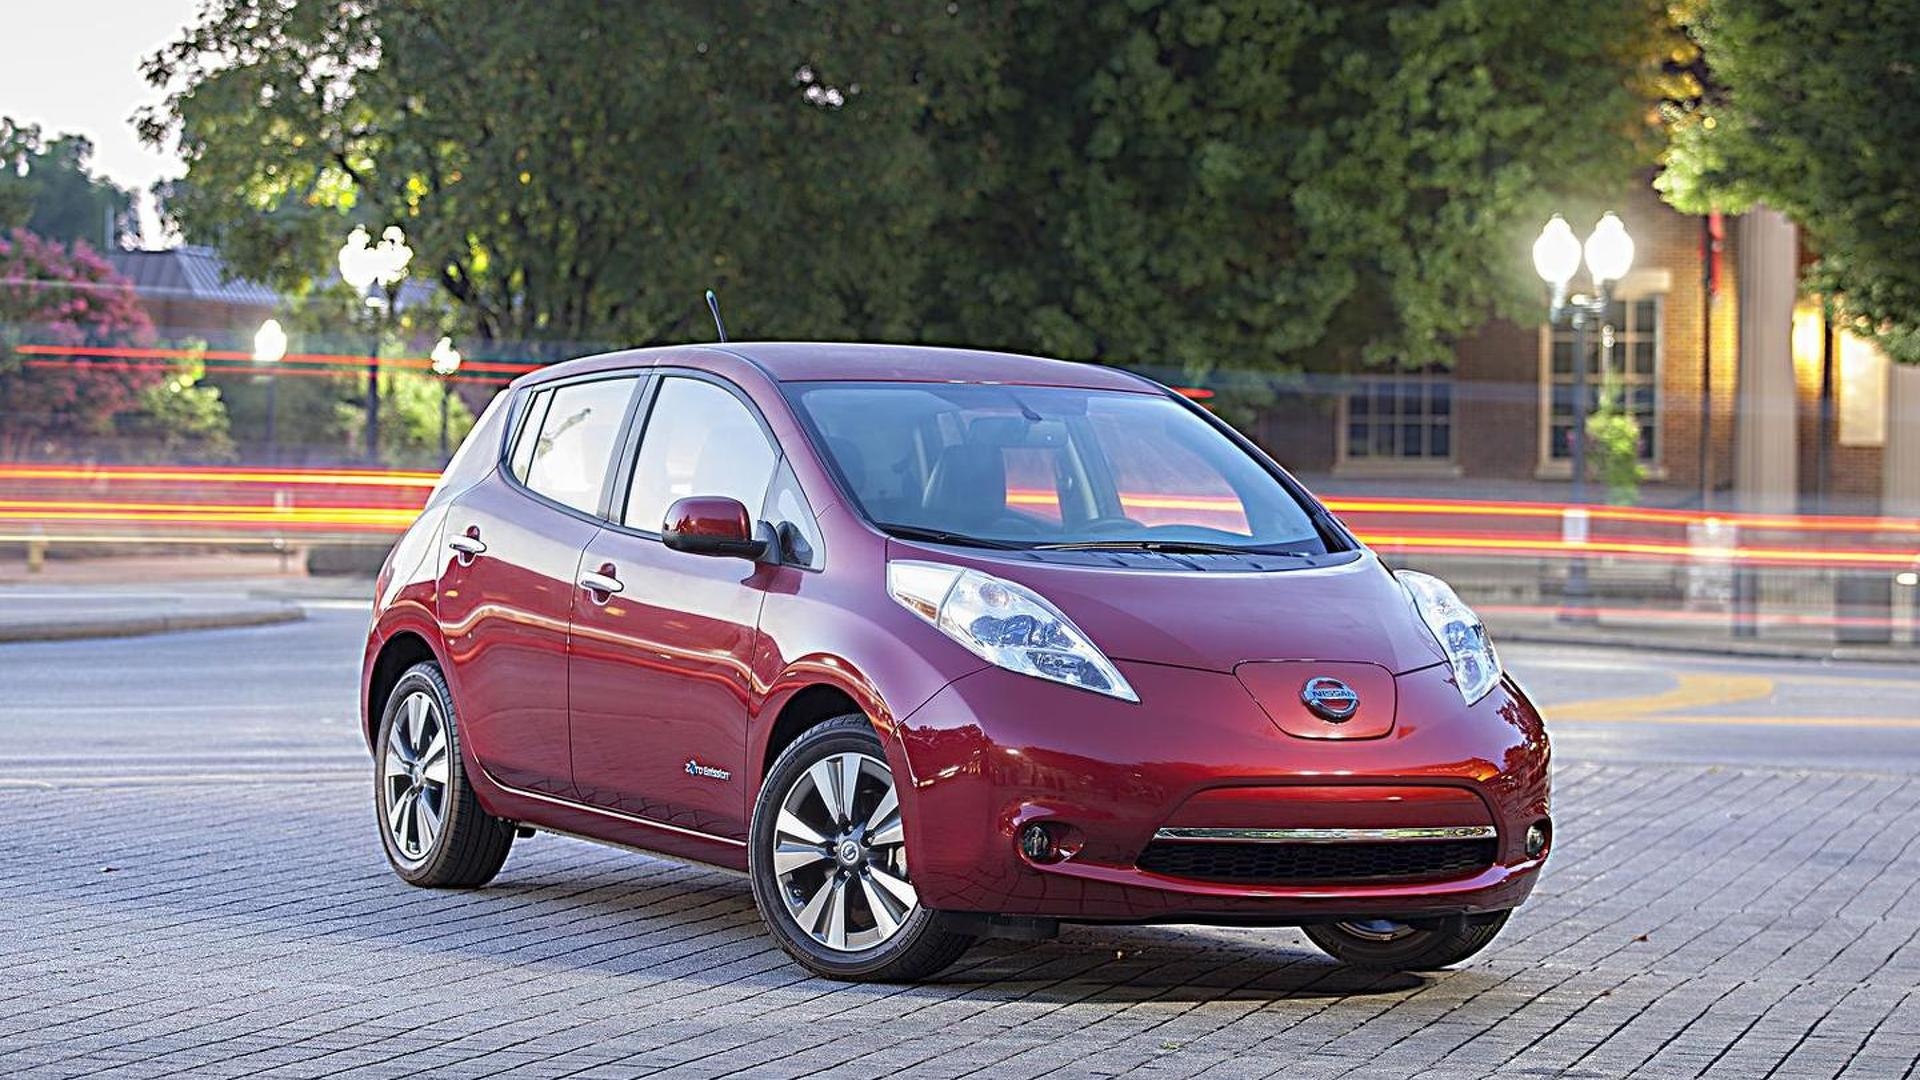 Nissan VP downplays fuel cell vehicles, has high hopes for EVs